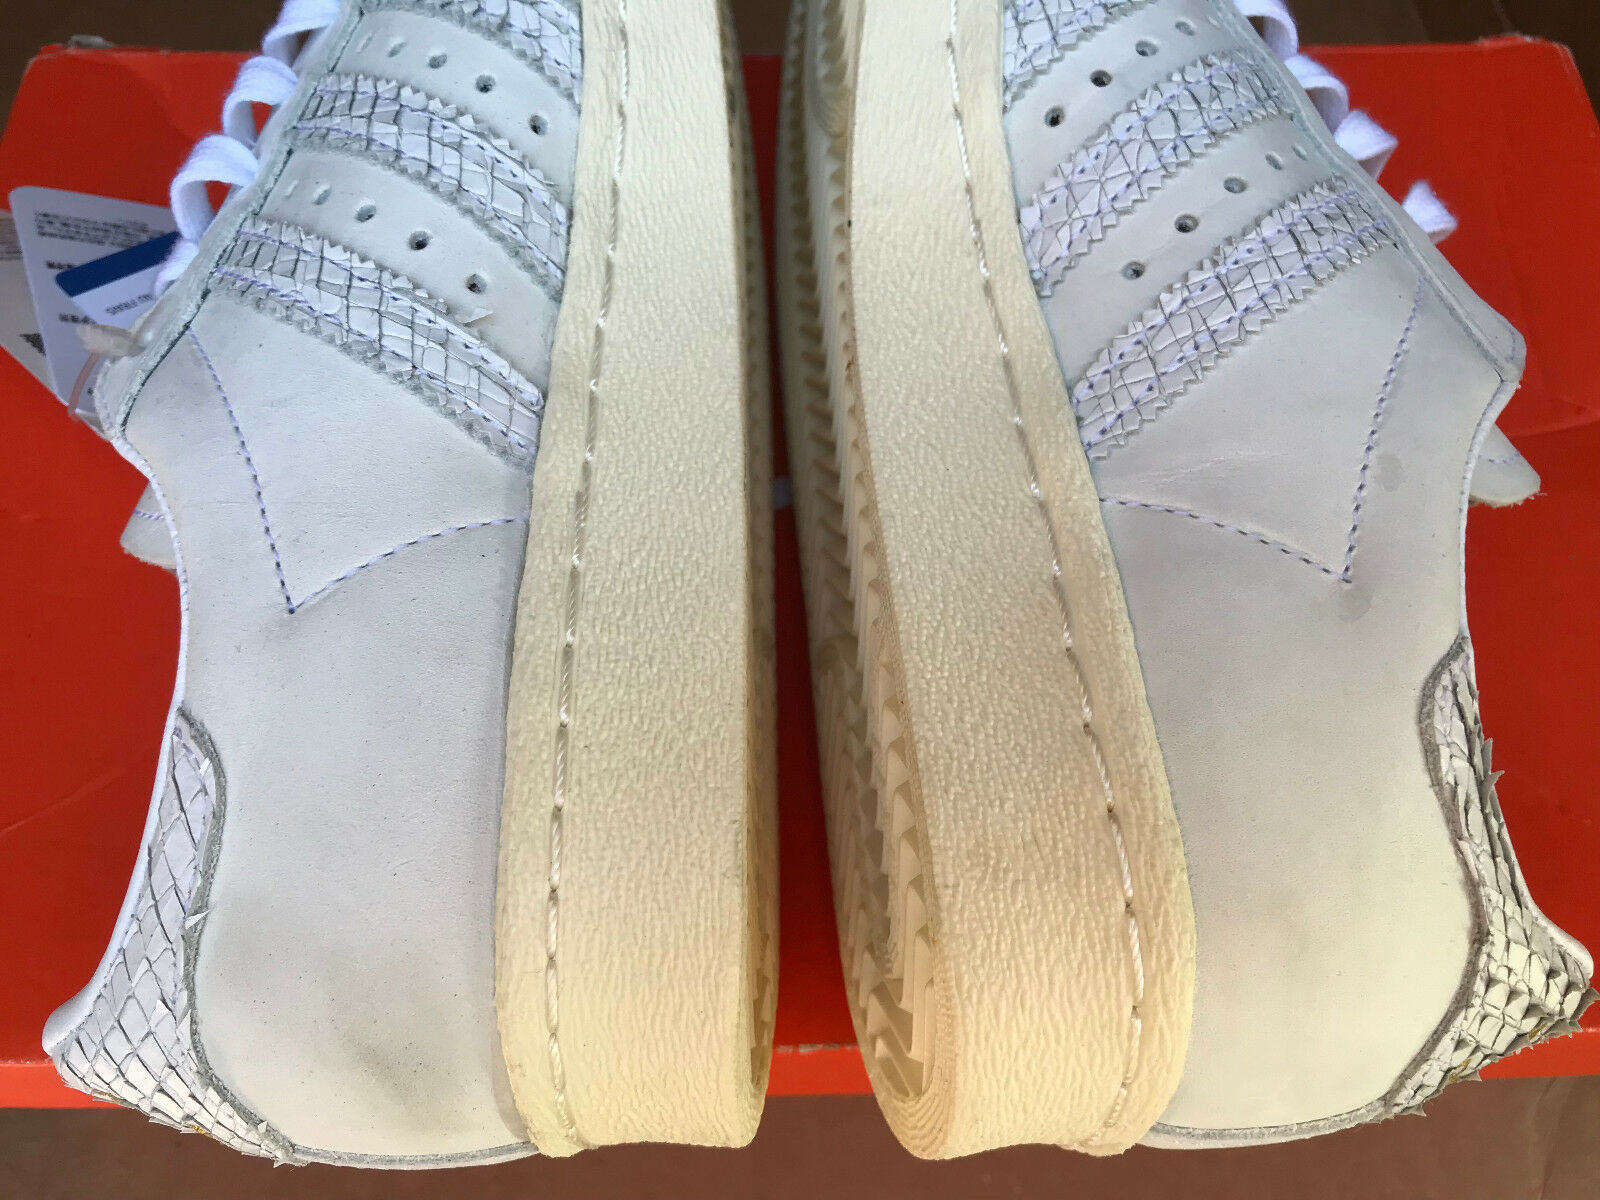 80s Snake Adidas By9075 Superstar W Leather Originals Reptile fZaxU